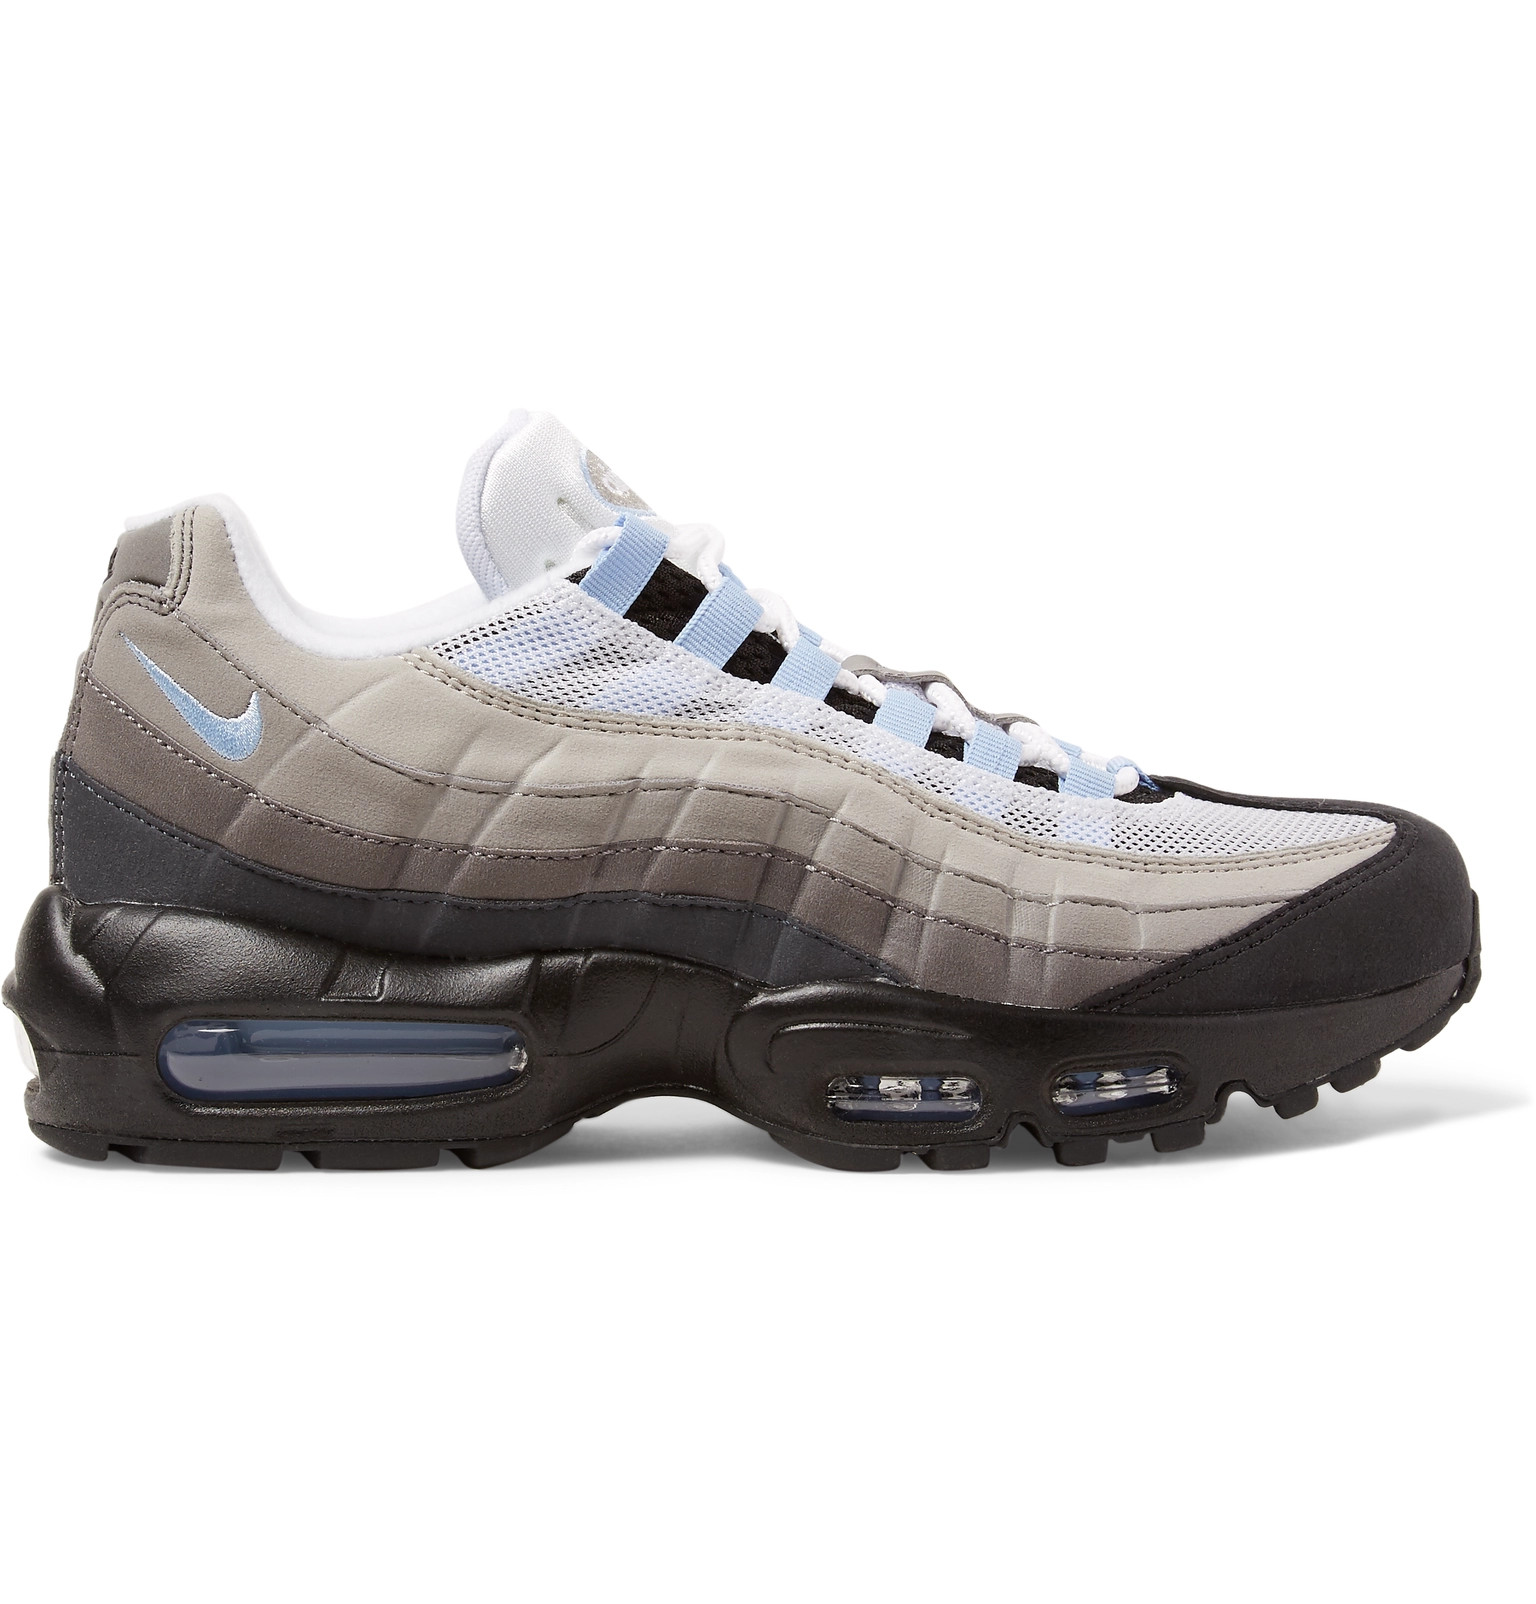 timeless design 8b2a7 384bd NikeAir Max 95 Mesh and Suede Sneakers.  170. Tap to Close. 1